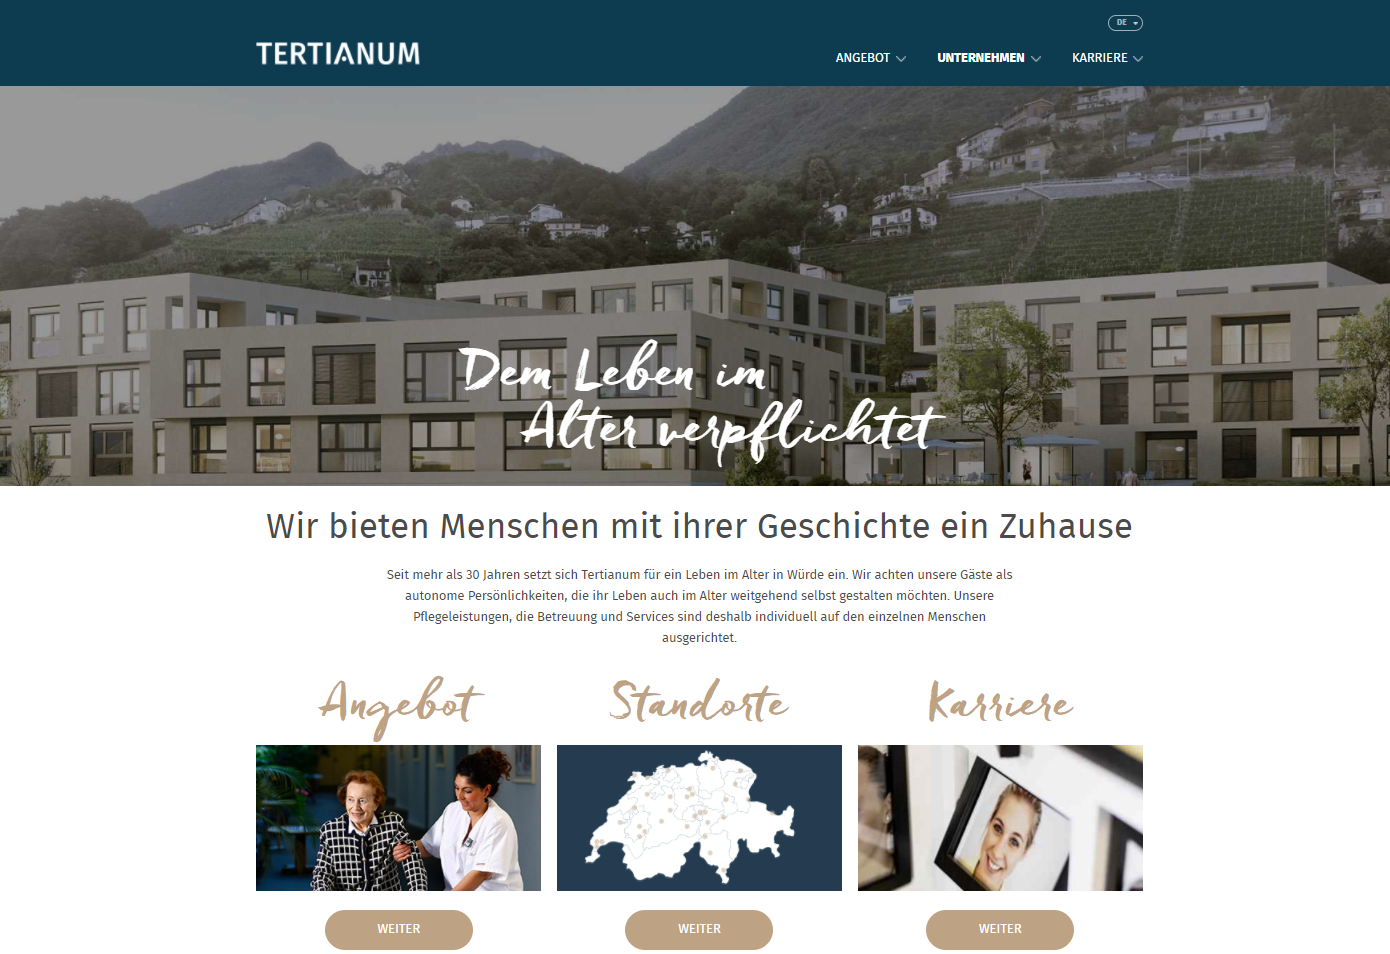 C:\Users\Andreas Lehmann\Desktop\Content Marketing Content Formates Neuer Markenauftritt Tertianum Management AG